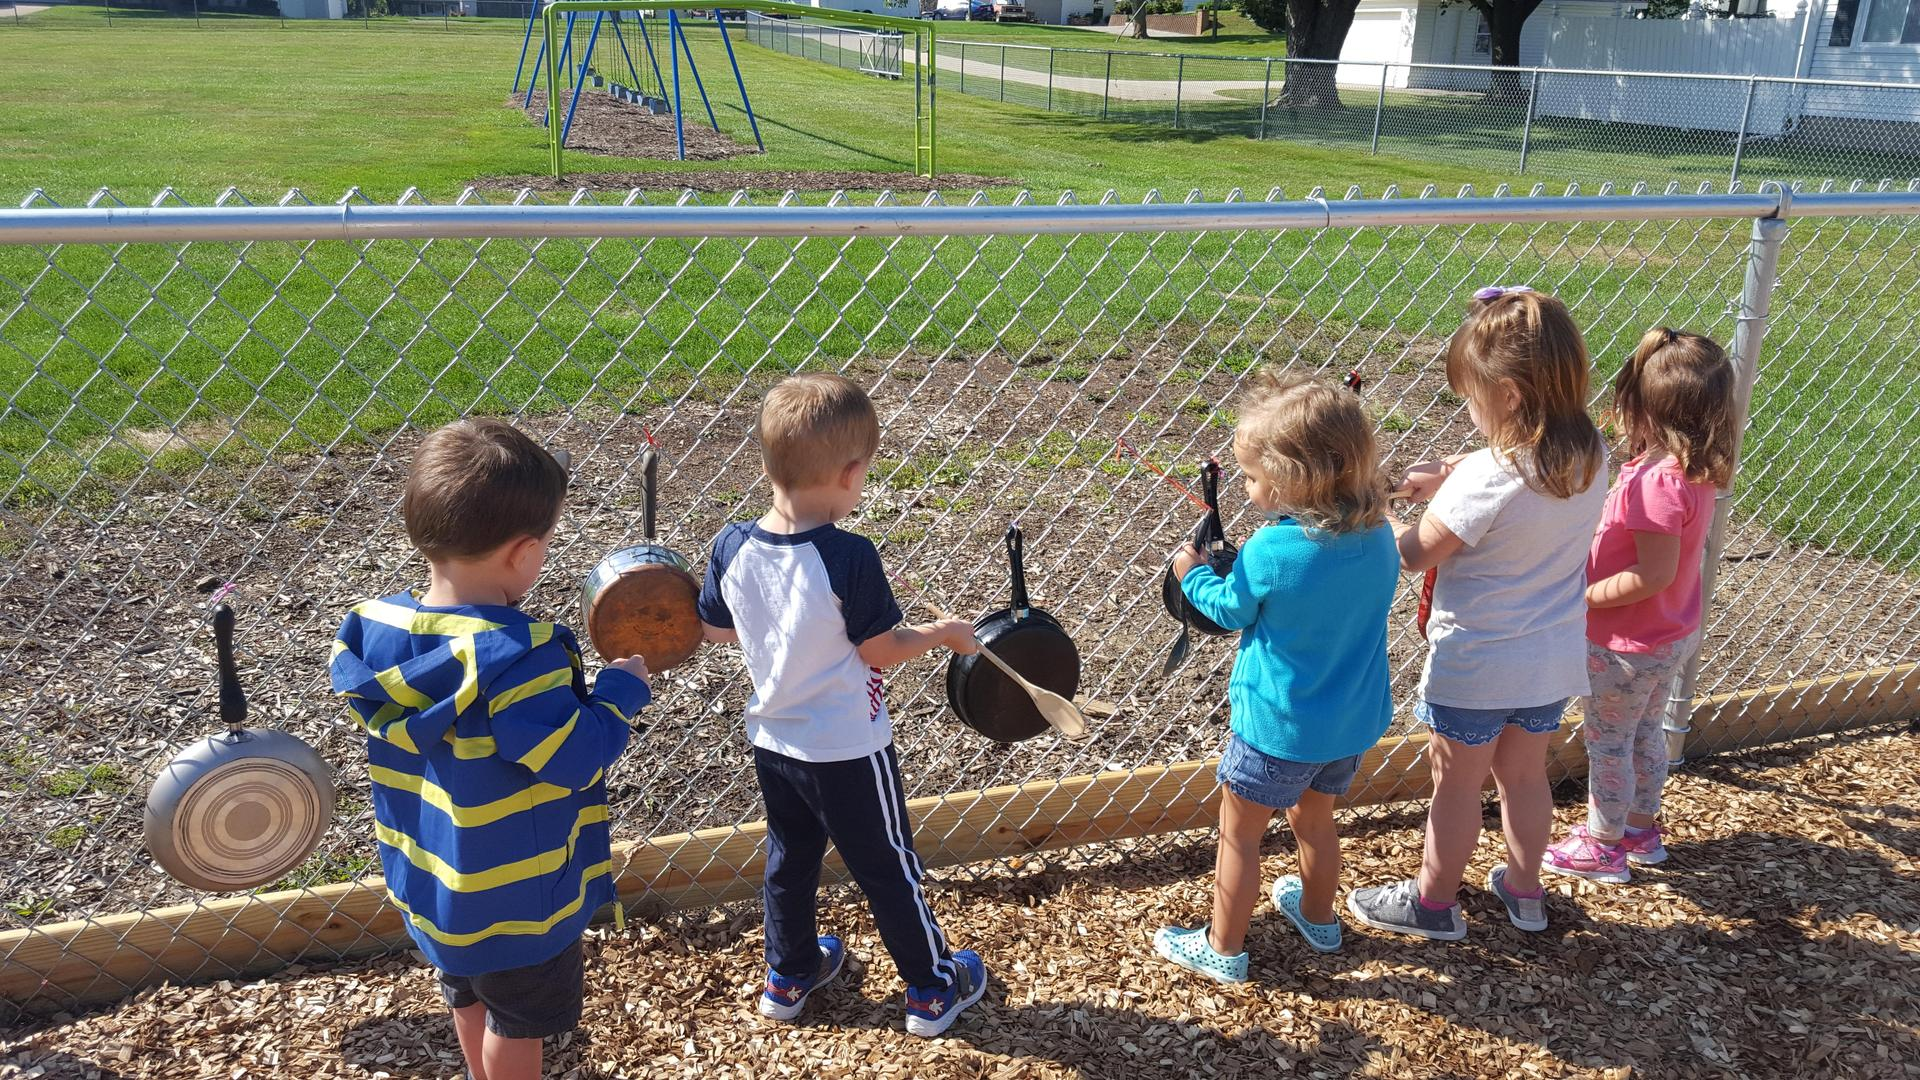 Preschool students using spoons to knock onpots and skillets suspended from chain link fence.